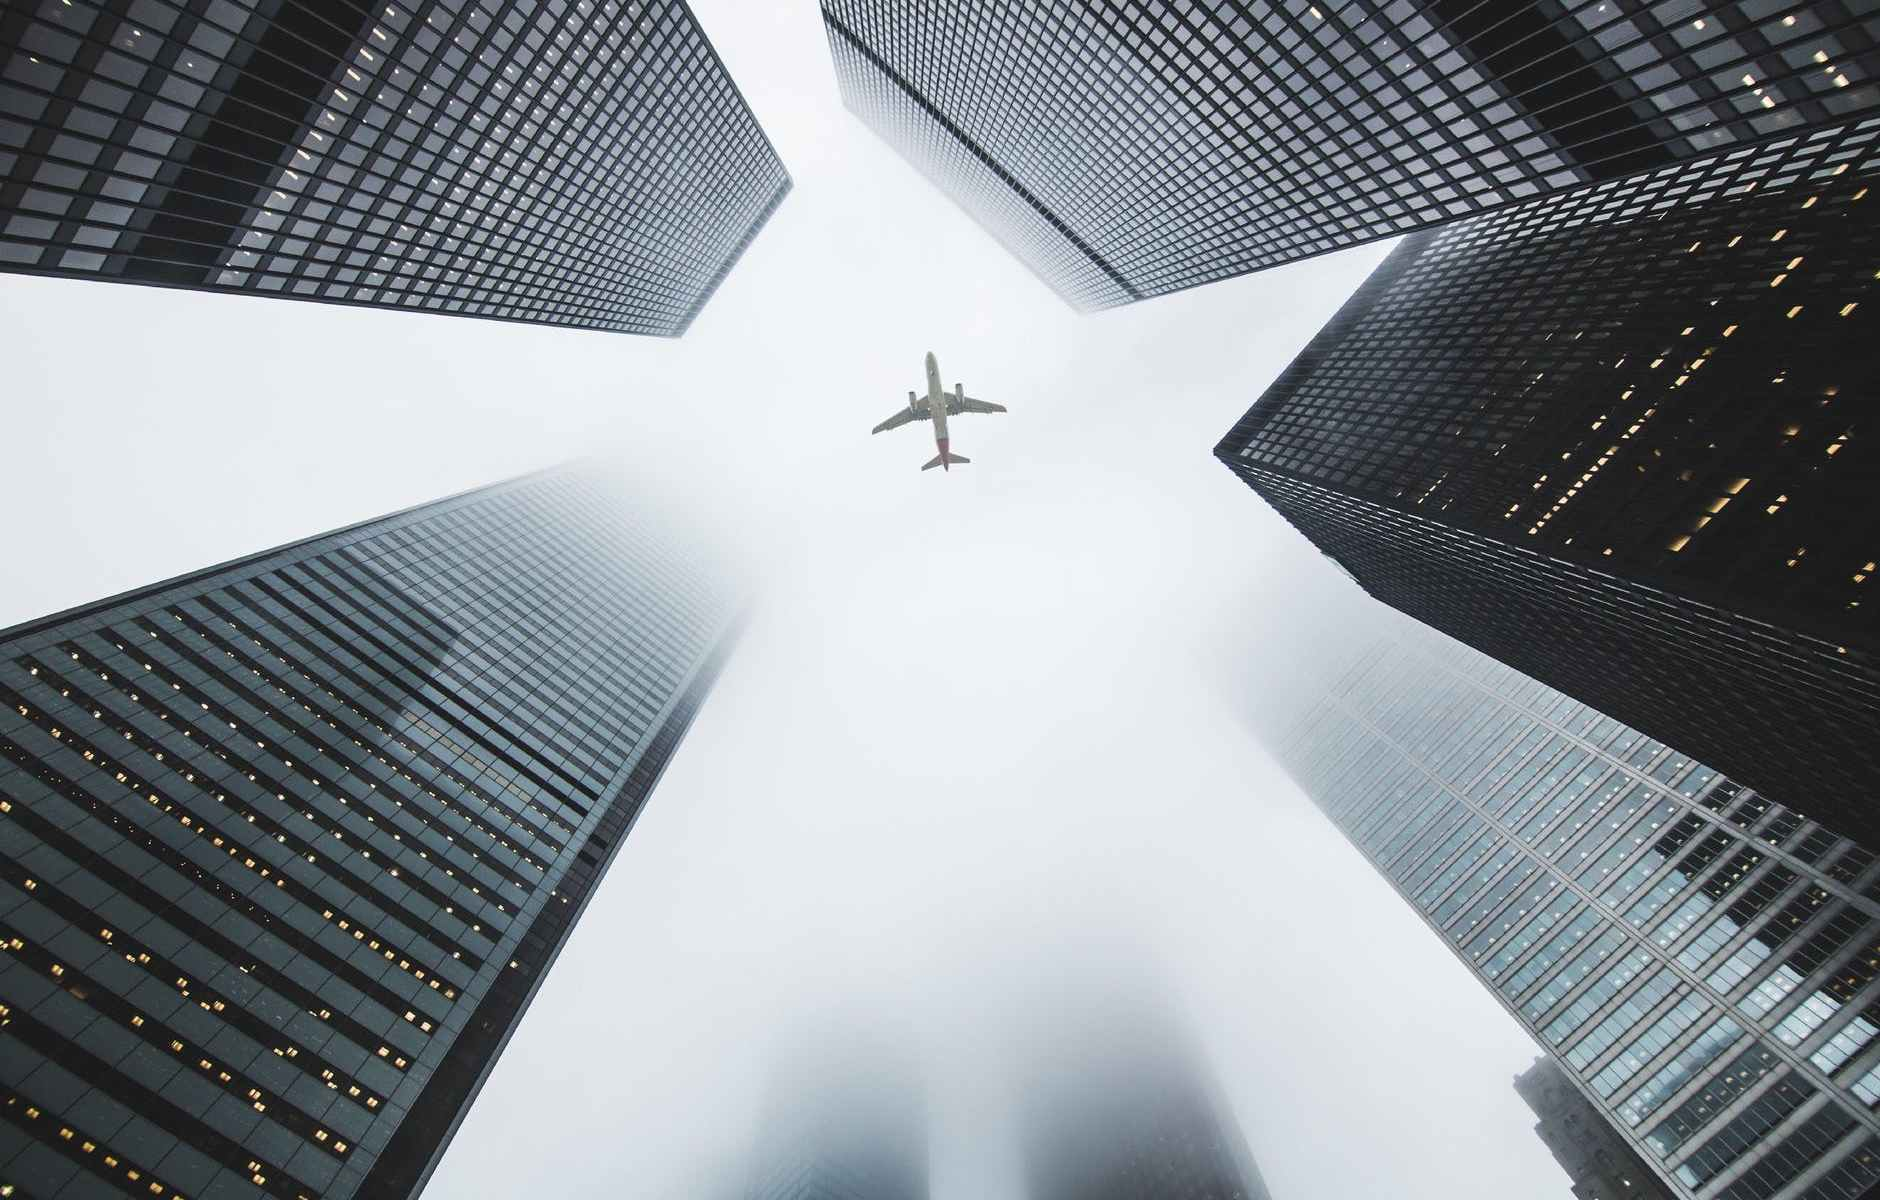 low angle photo of airplane flying over high rise buildings